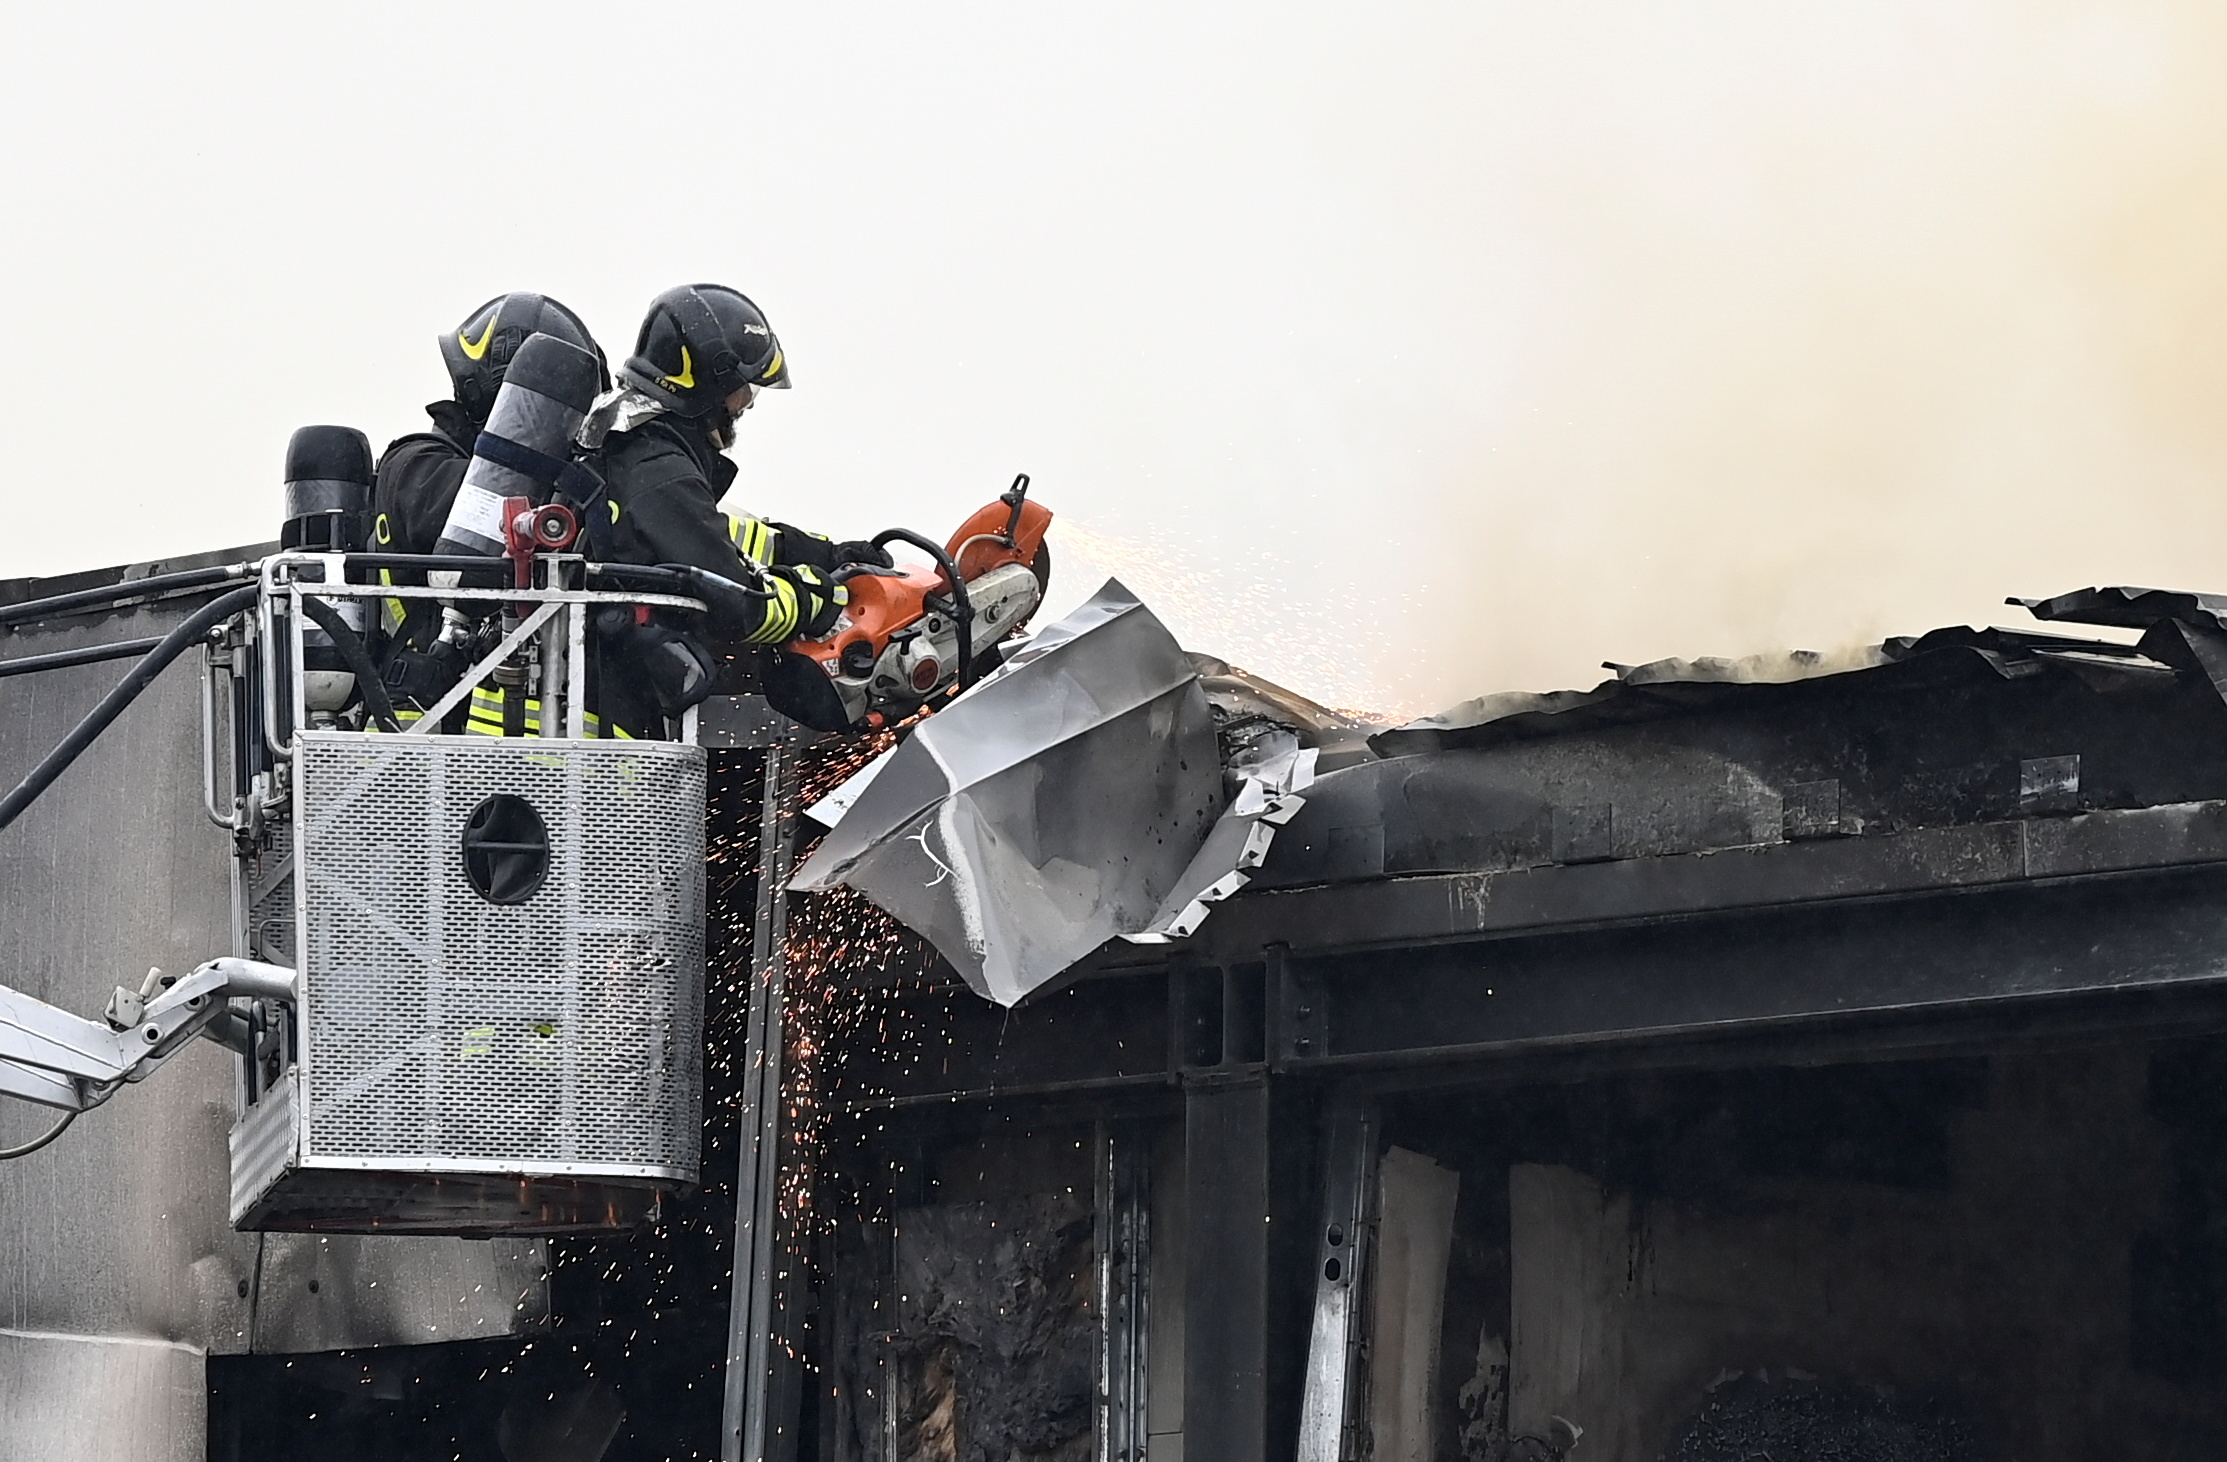 Fire fighters work at the scene where a small plane crashed into a building in San Donato Milanese, Italy, October 3, 2021. REUTERS/Flavio Lo Scalzo